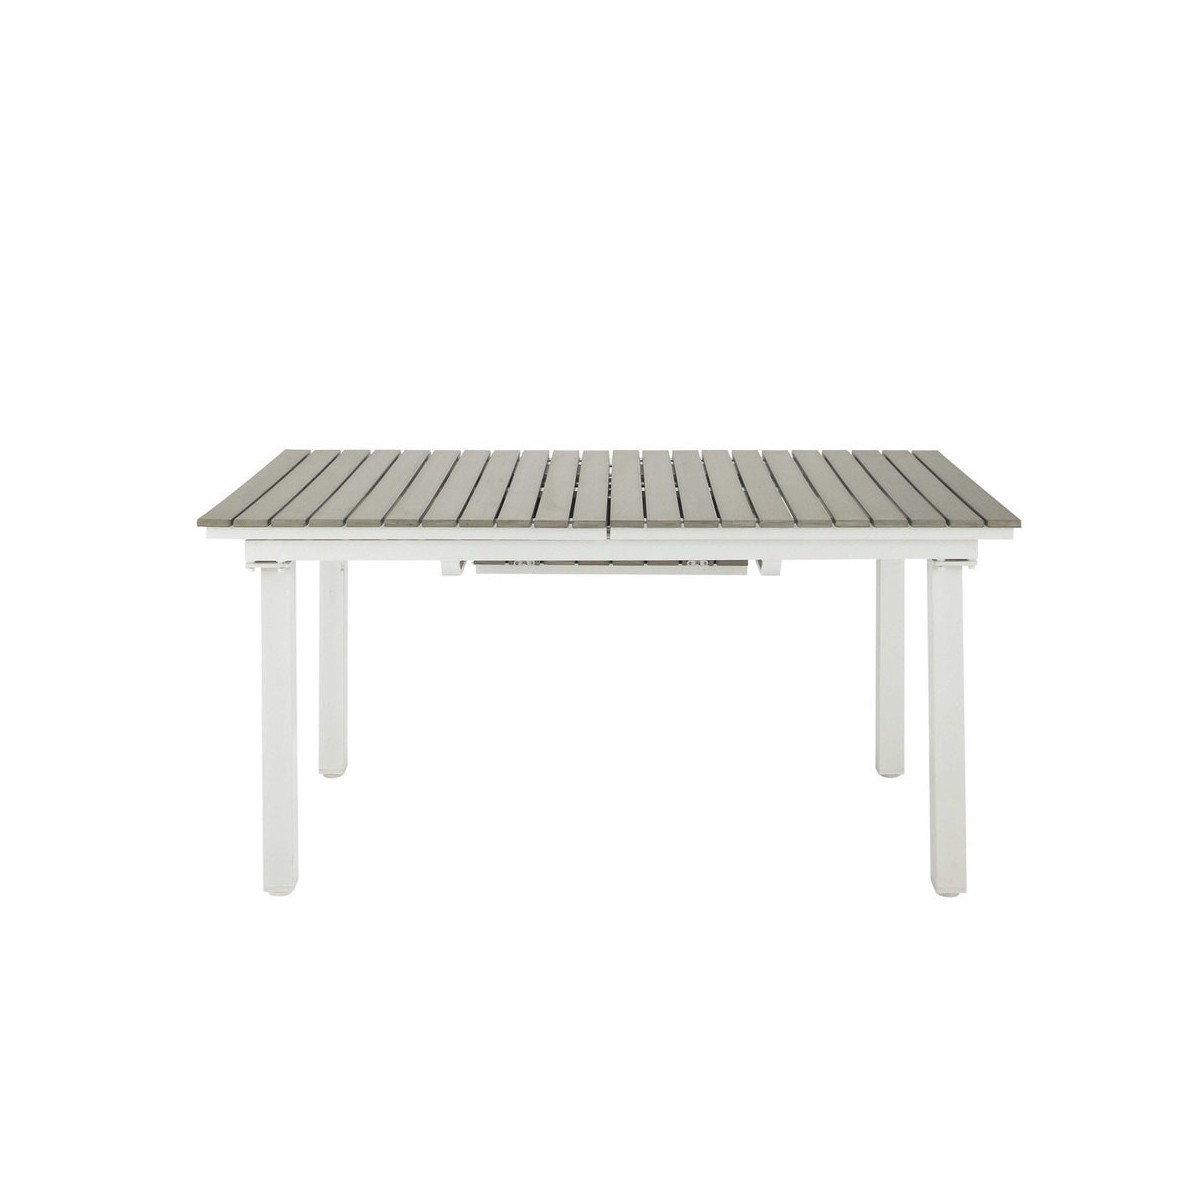 Best table de jardin plastique imitation bois contemporary for Table jardin en bois